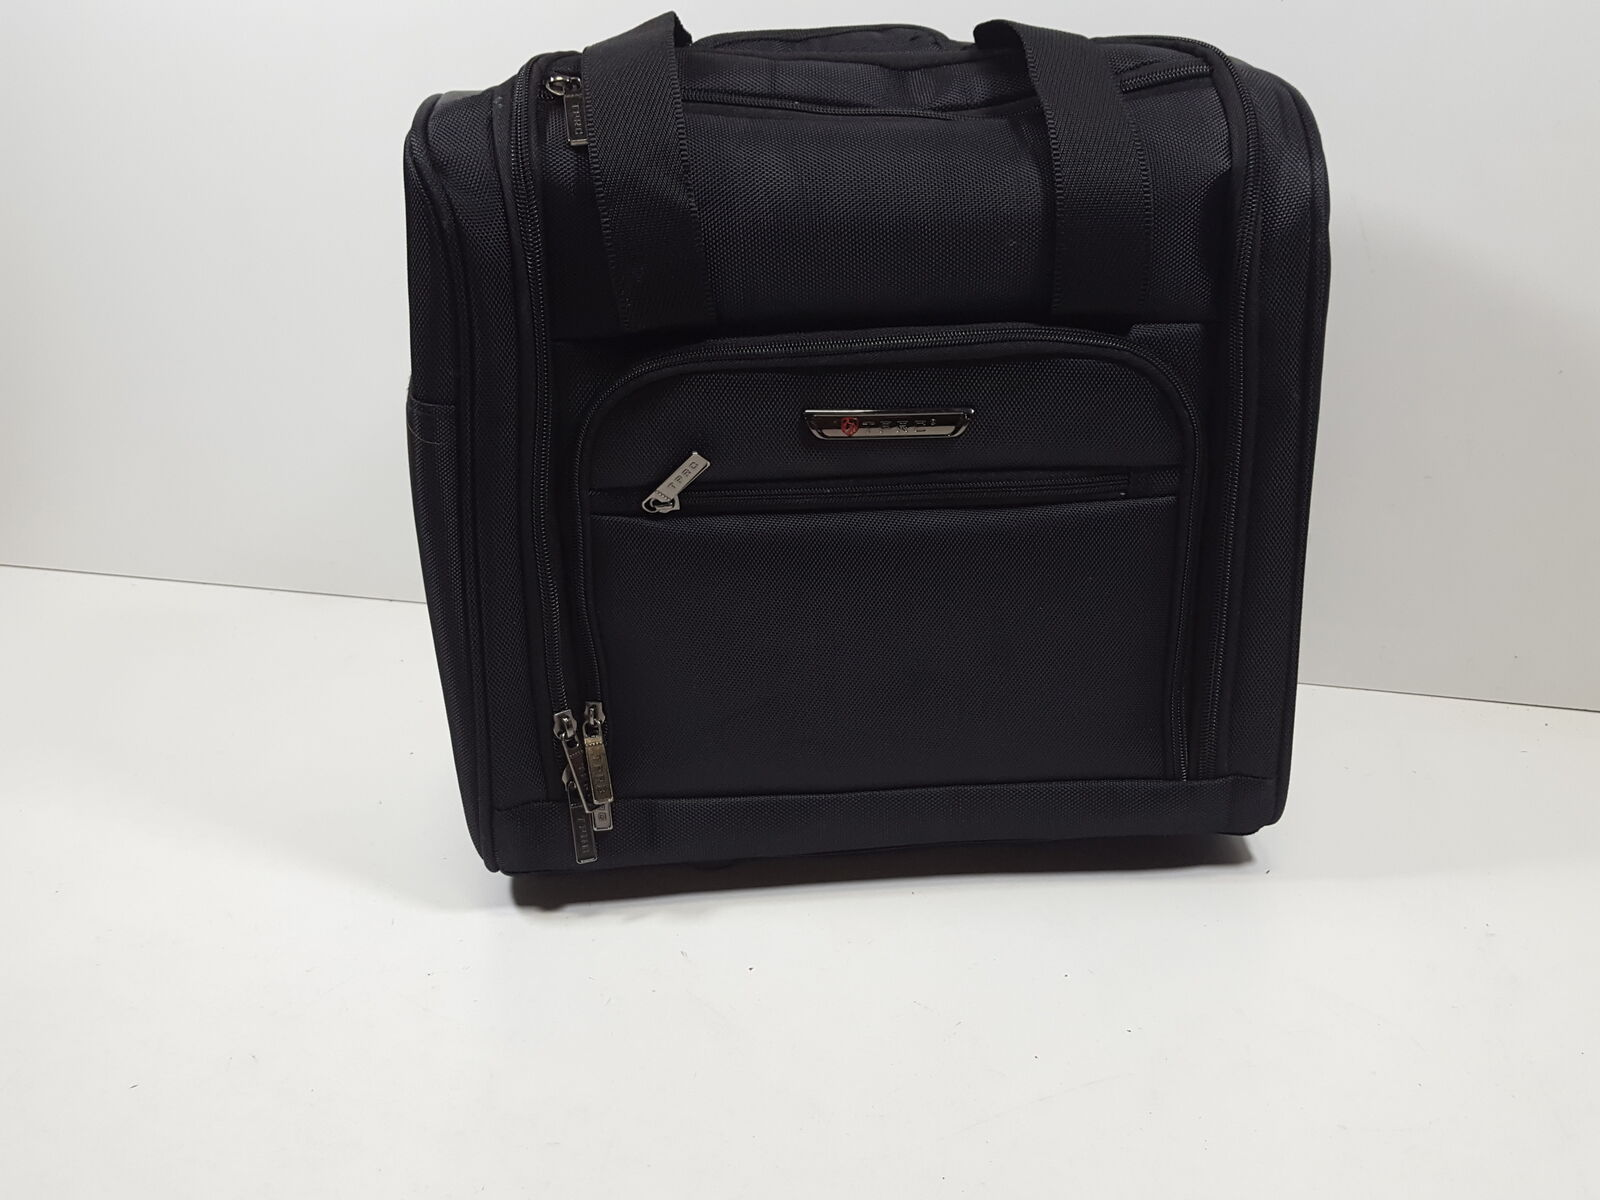 Black Option TPRC 15 Smart Under Seat Carry-On Luggage with USB Charging Port